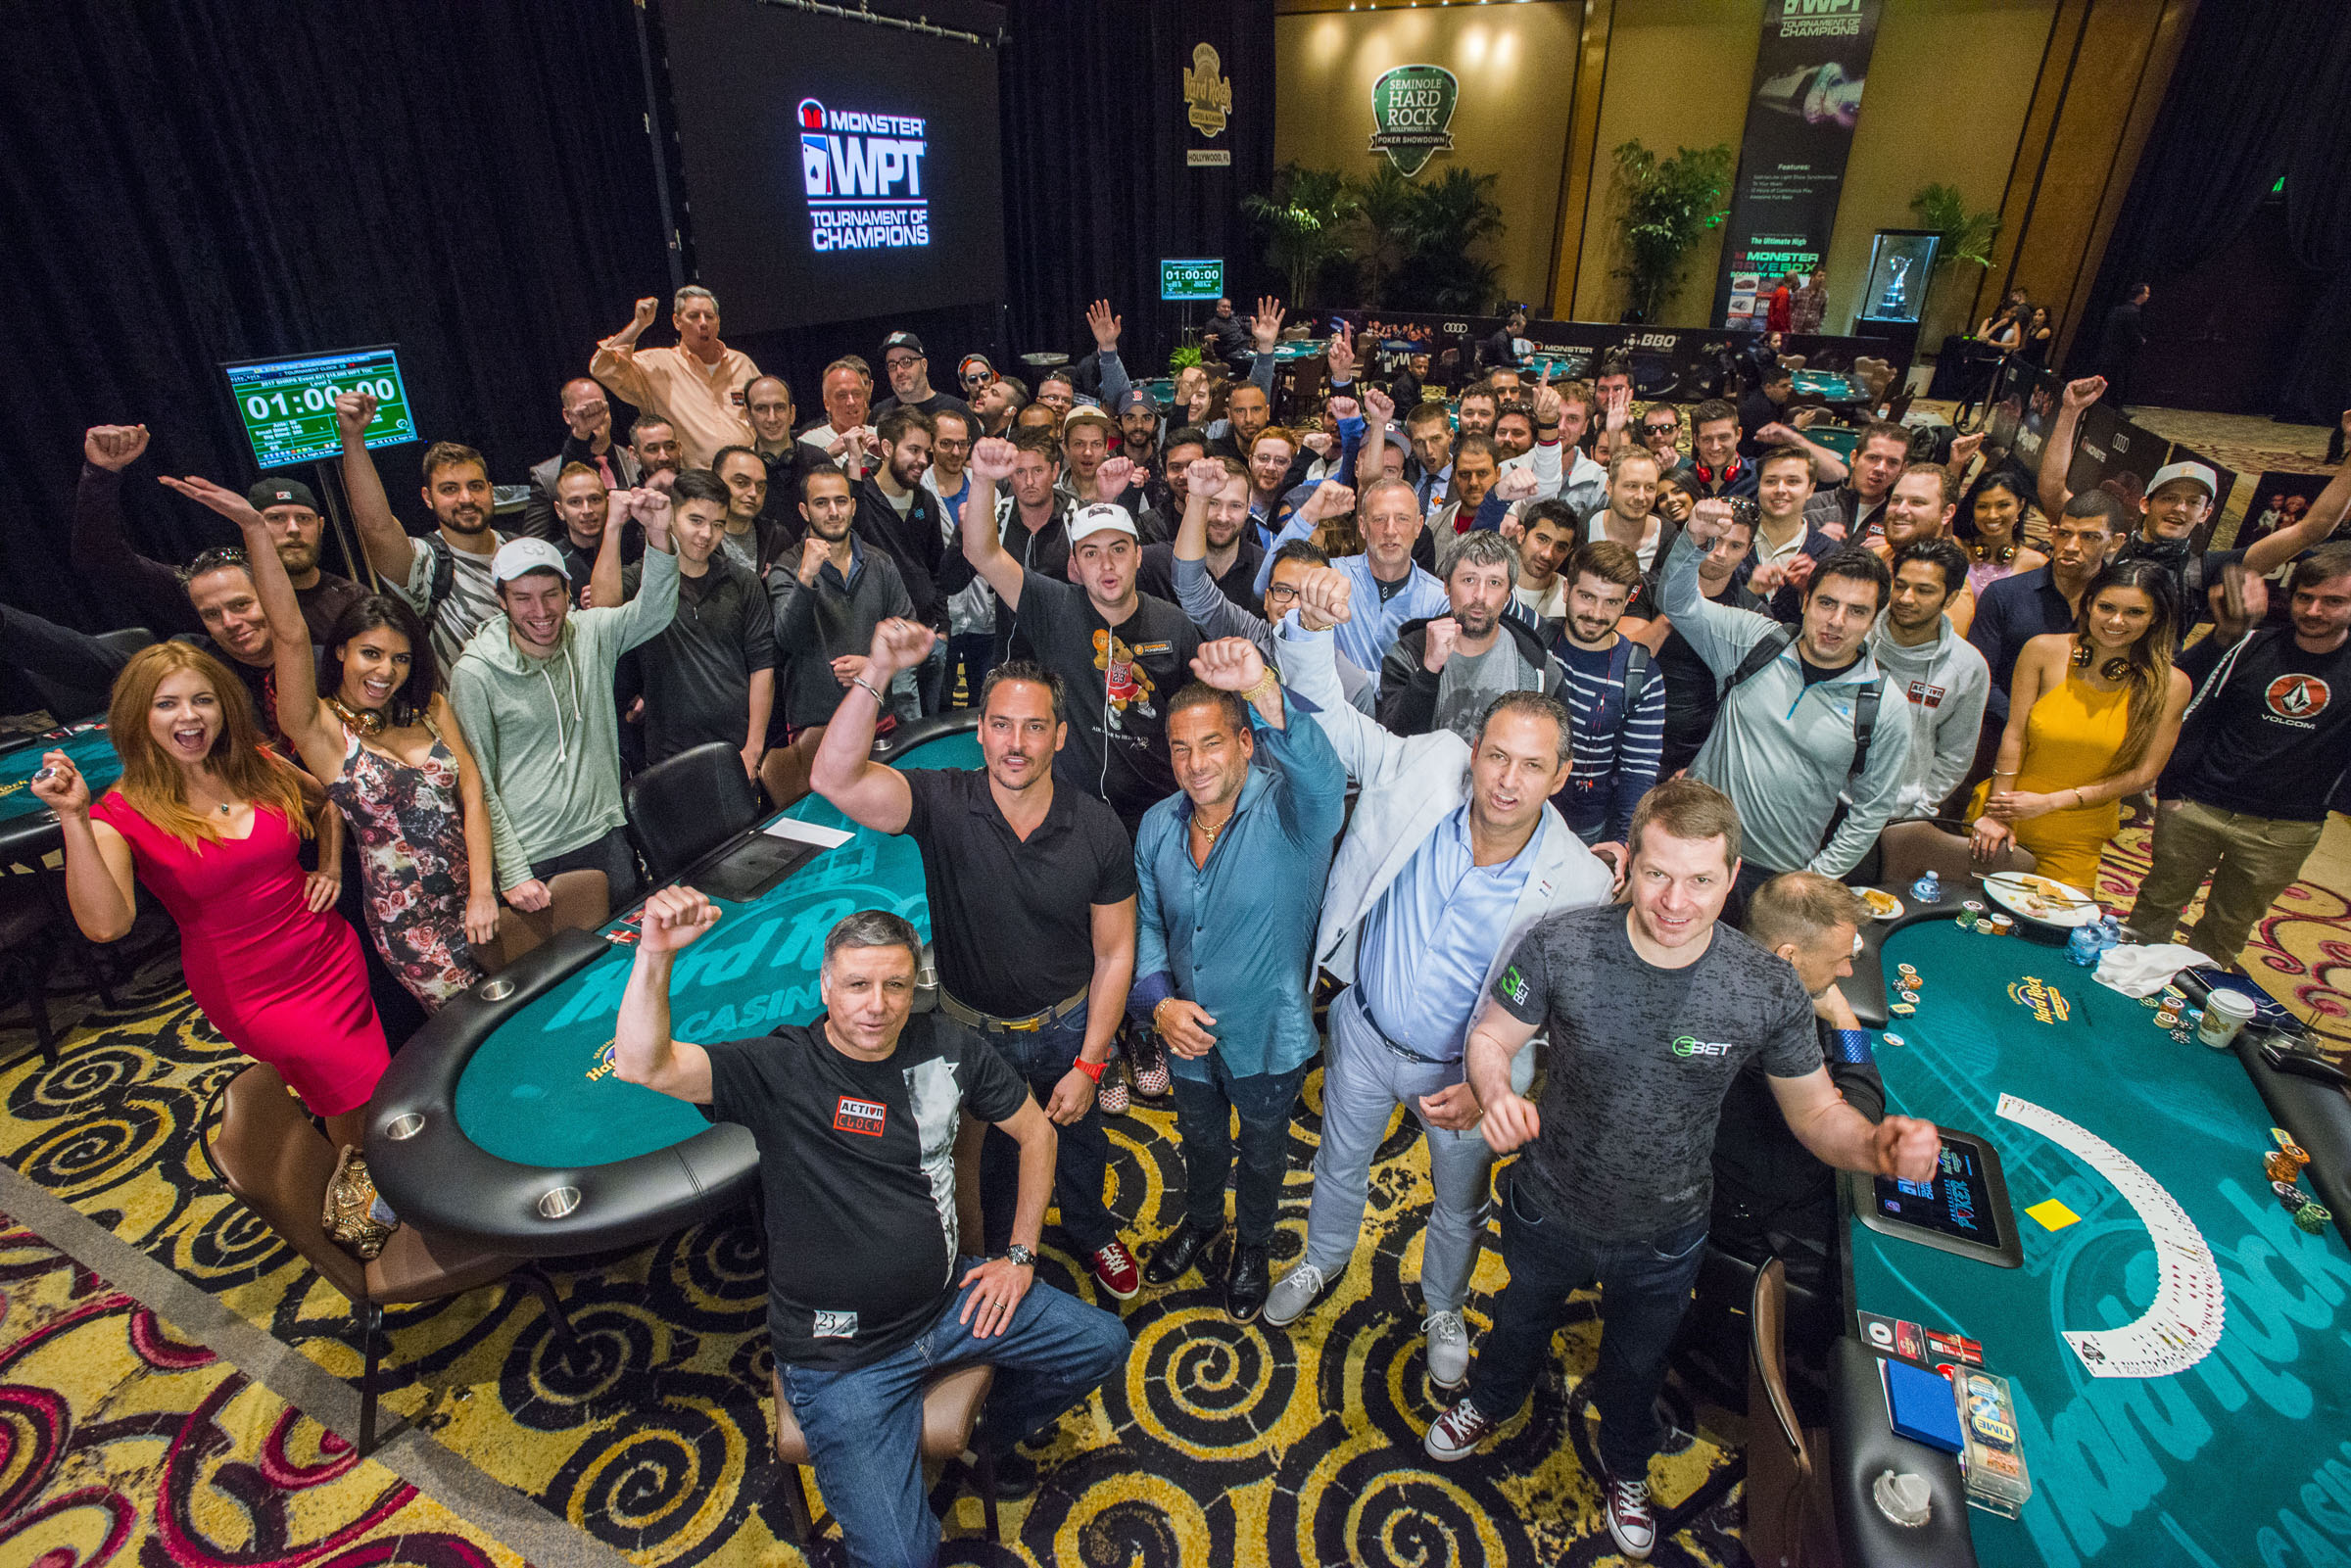 WPT Tournament of Champions 2017